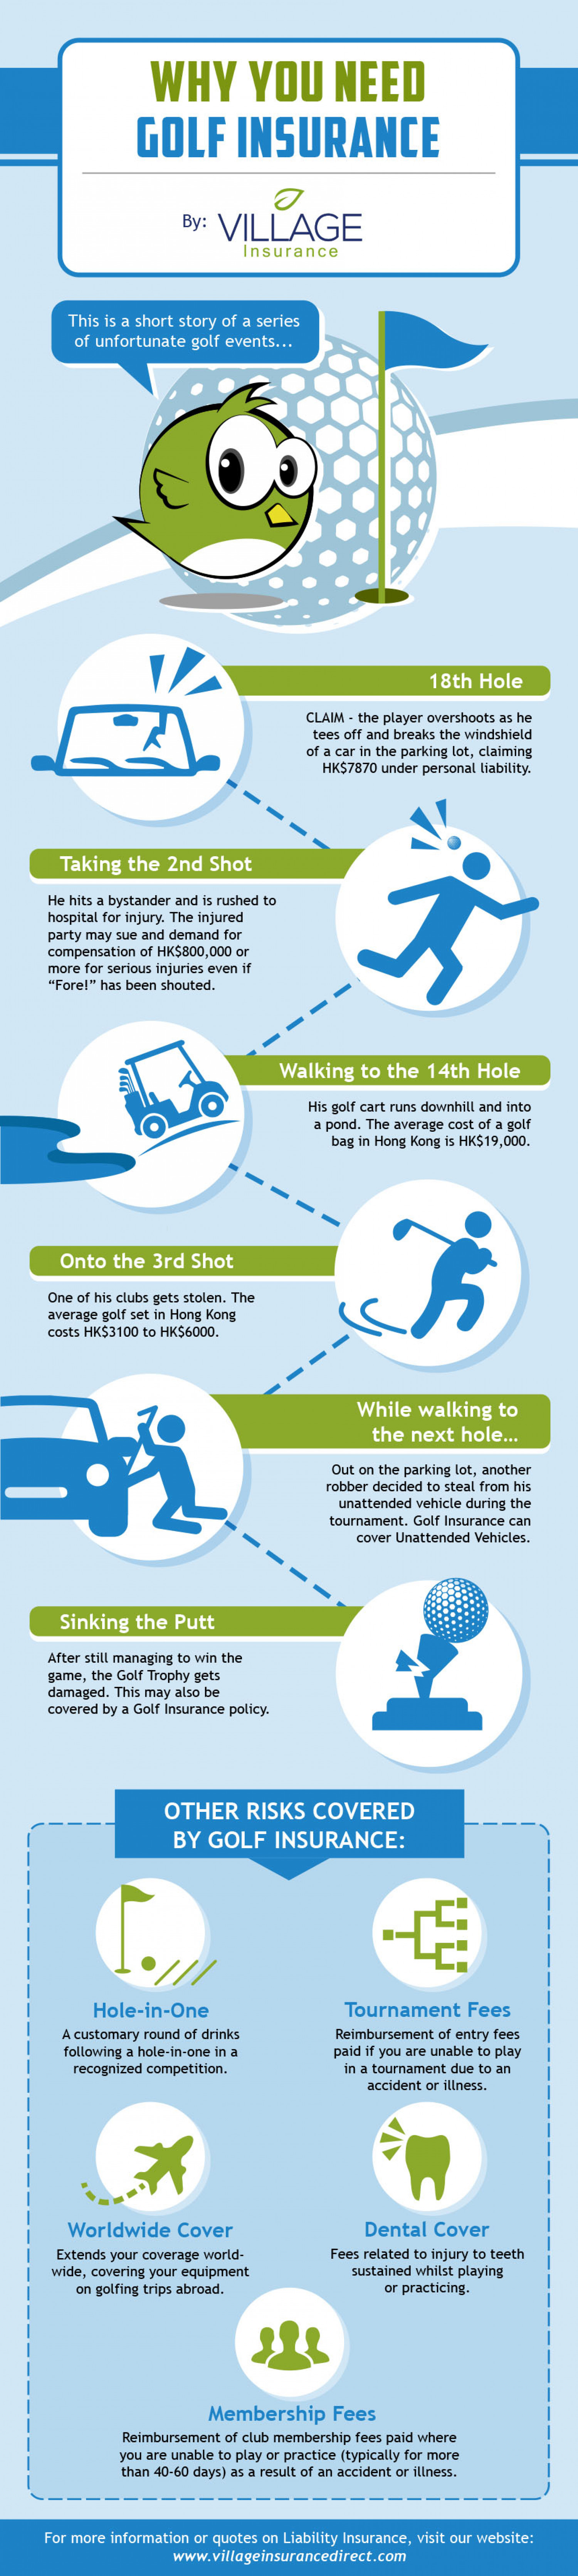 Why You Need Golf Insurance Infographic